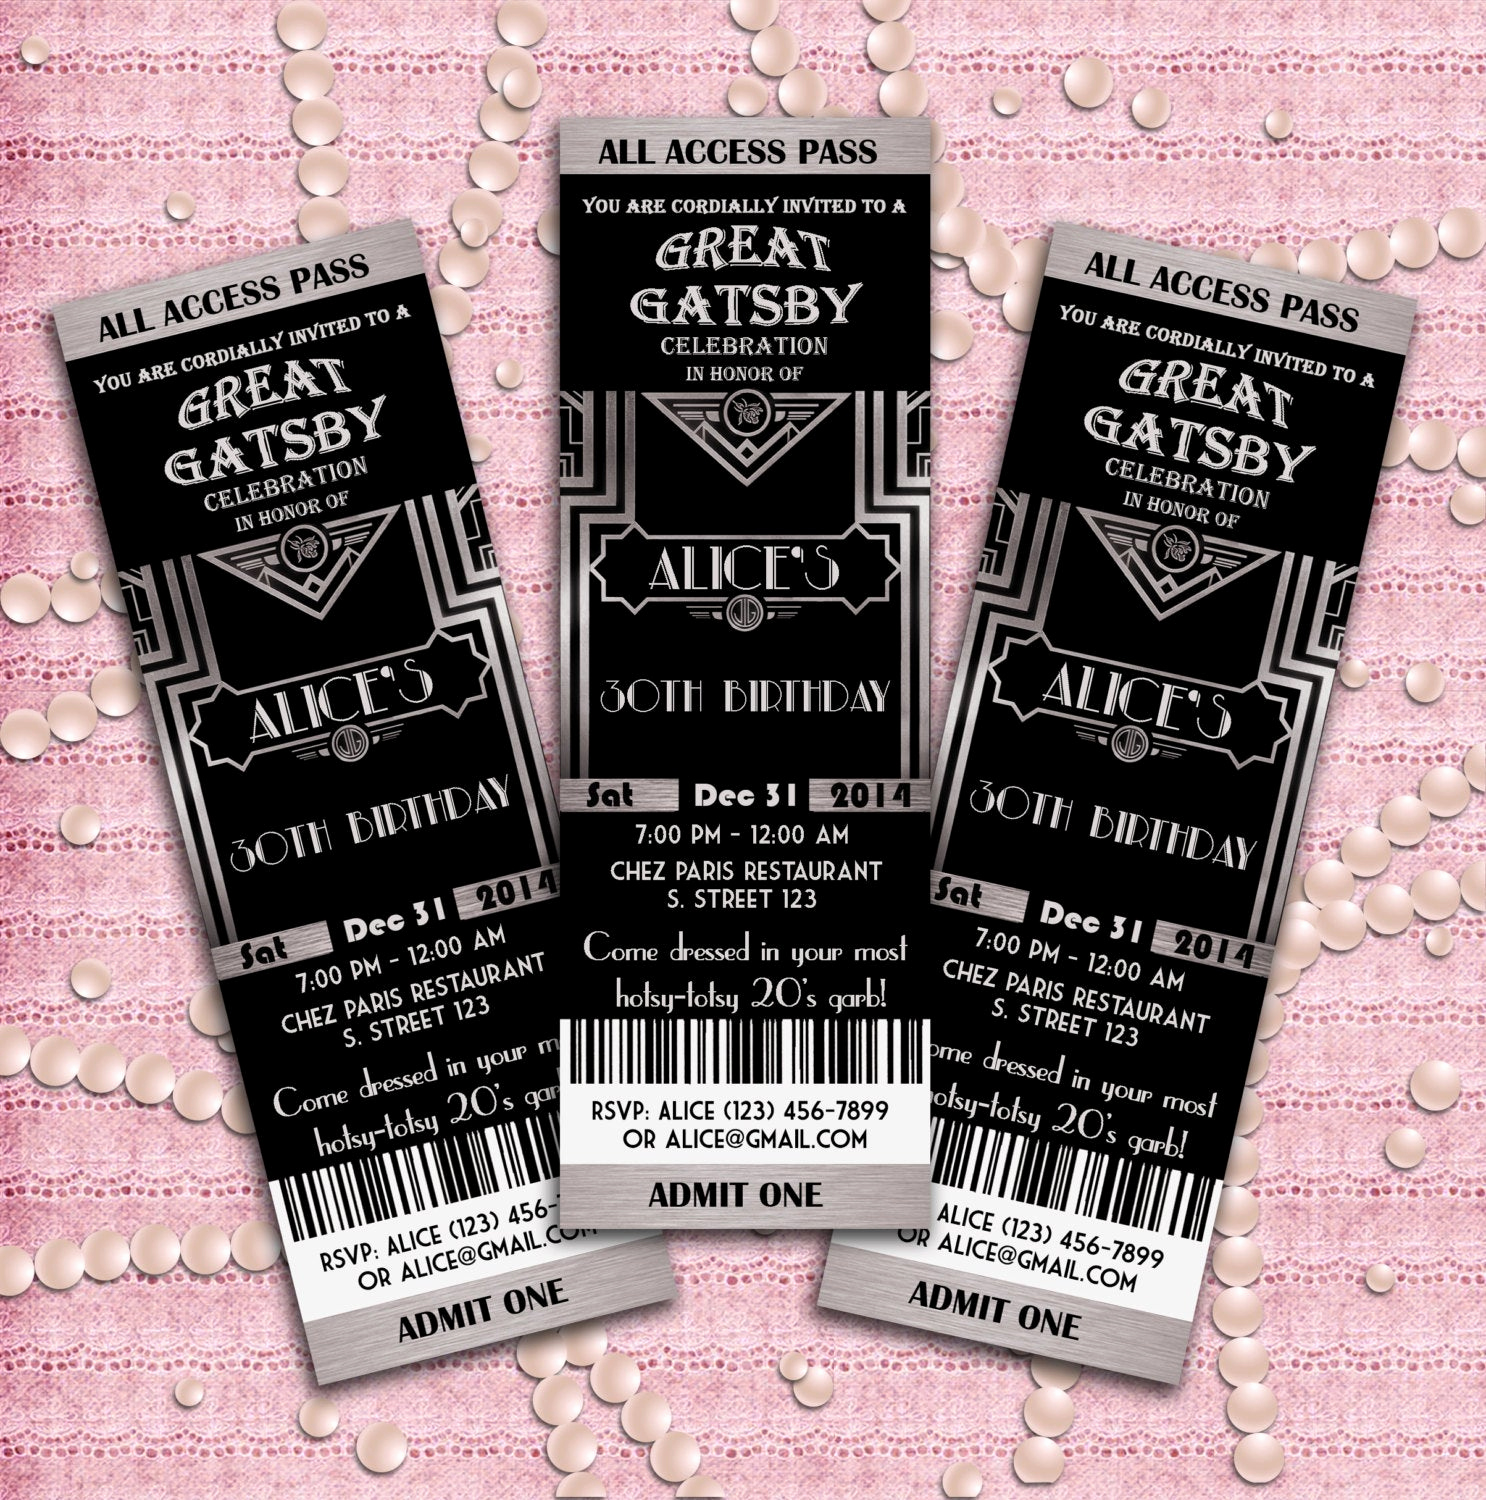 Great Gatsby Party Invitation Templates Fresh Great Gatsby Style Art Deco Party Invitation Prom